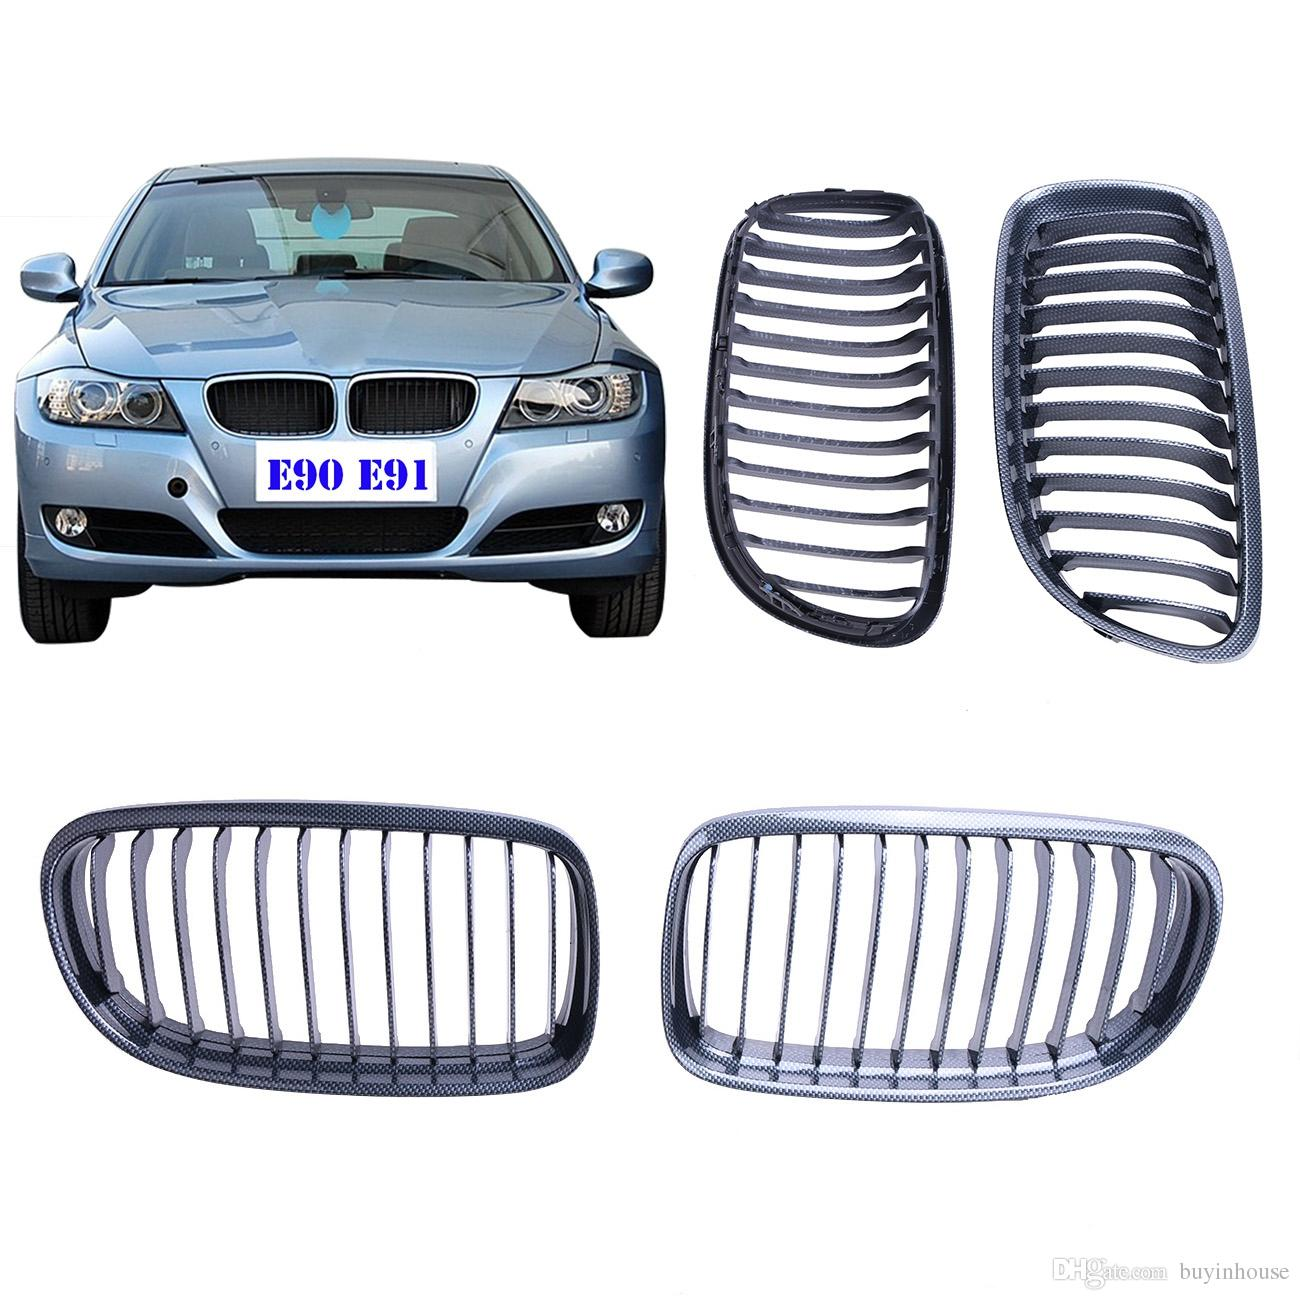 2019 For Bmw E90 Lci 2009 2010 2011 Carbon Fiber Look Front Grill